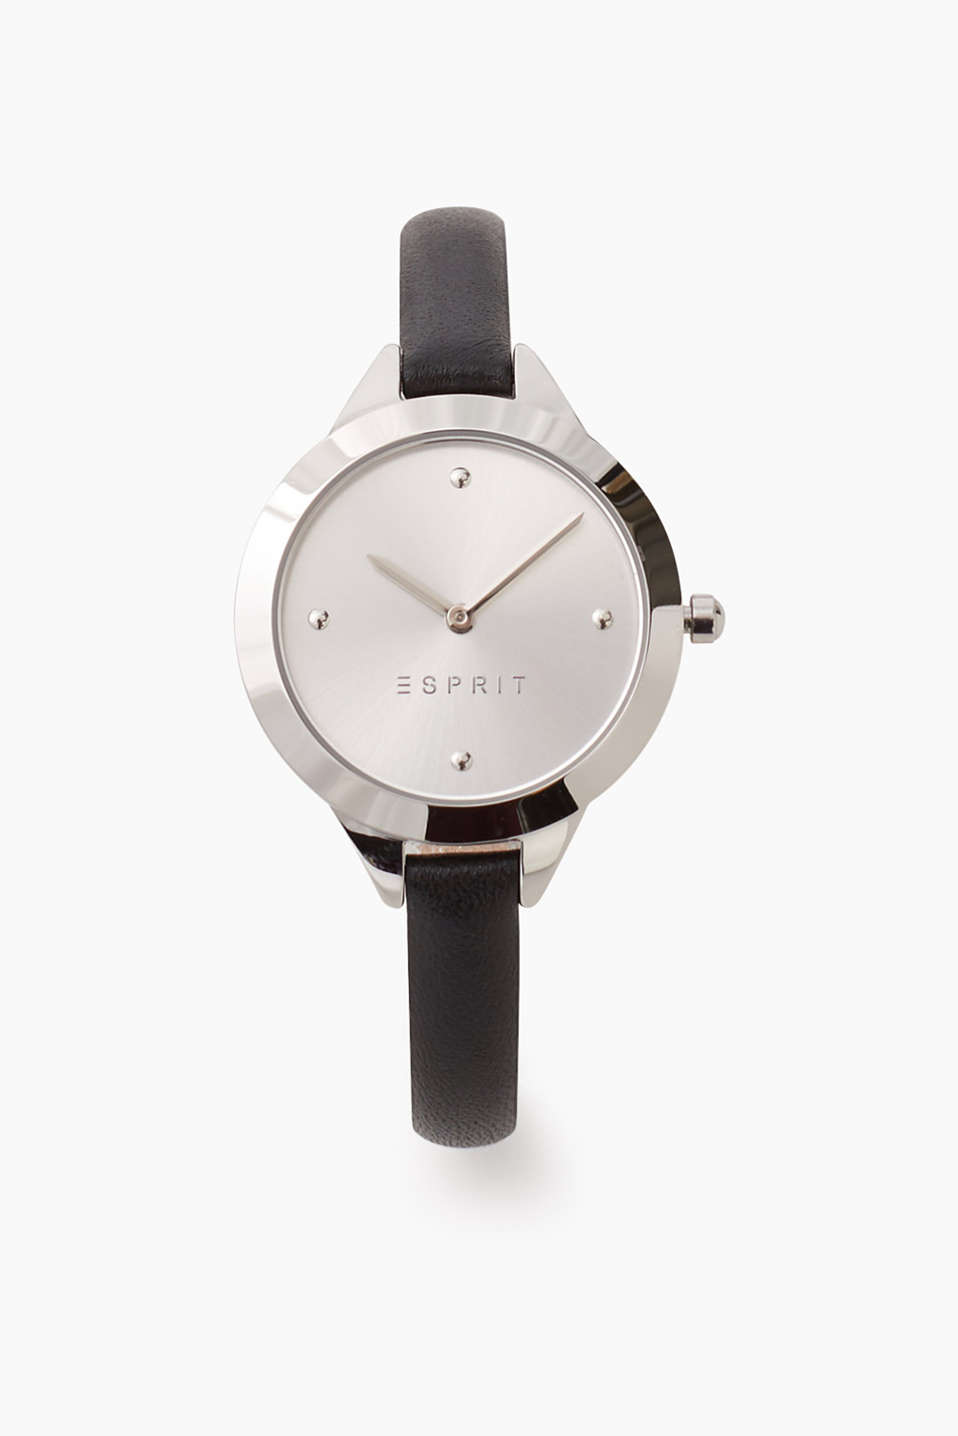 Esprit - Stainless steel watch + narrow leather strap